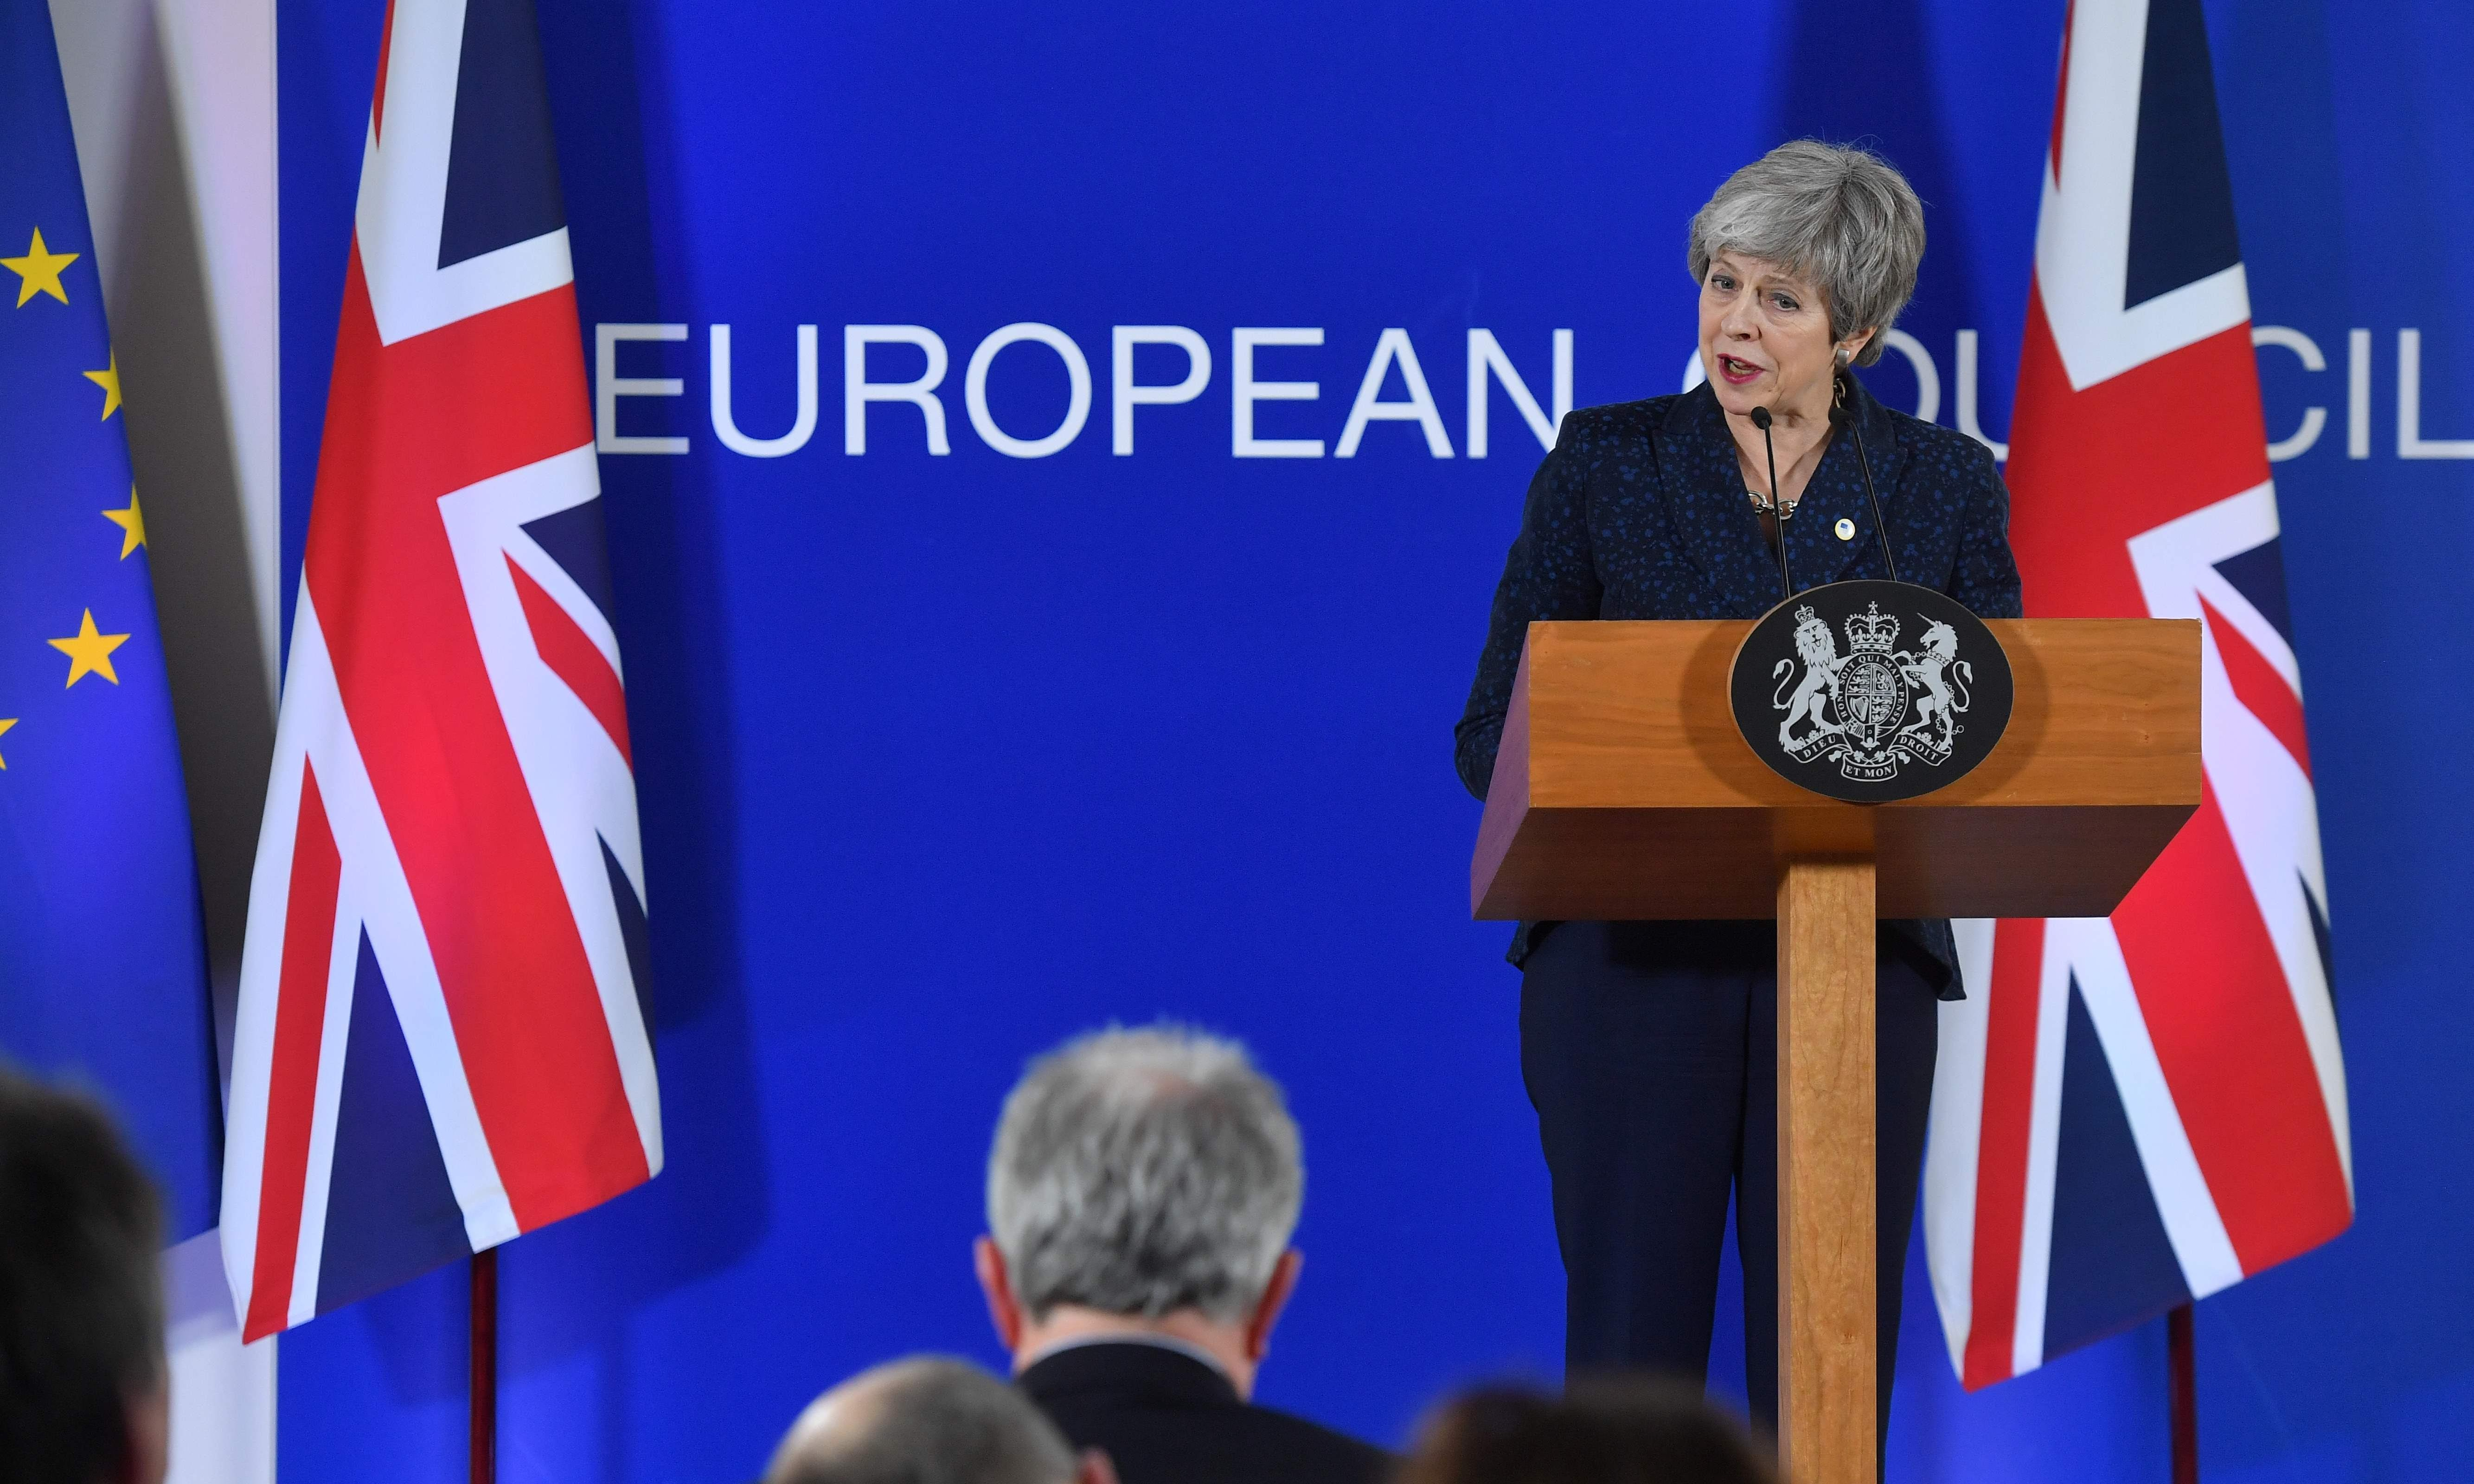 'It was not clear if she had a plan at all': how May's night at the summit unfolded